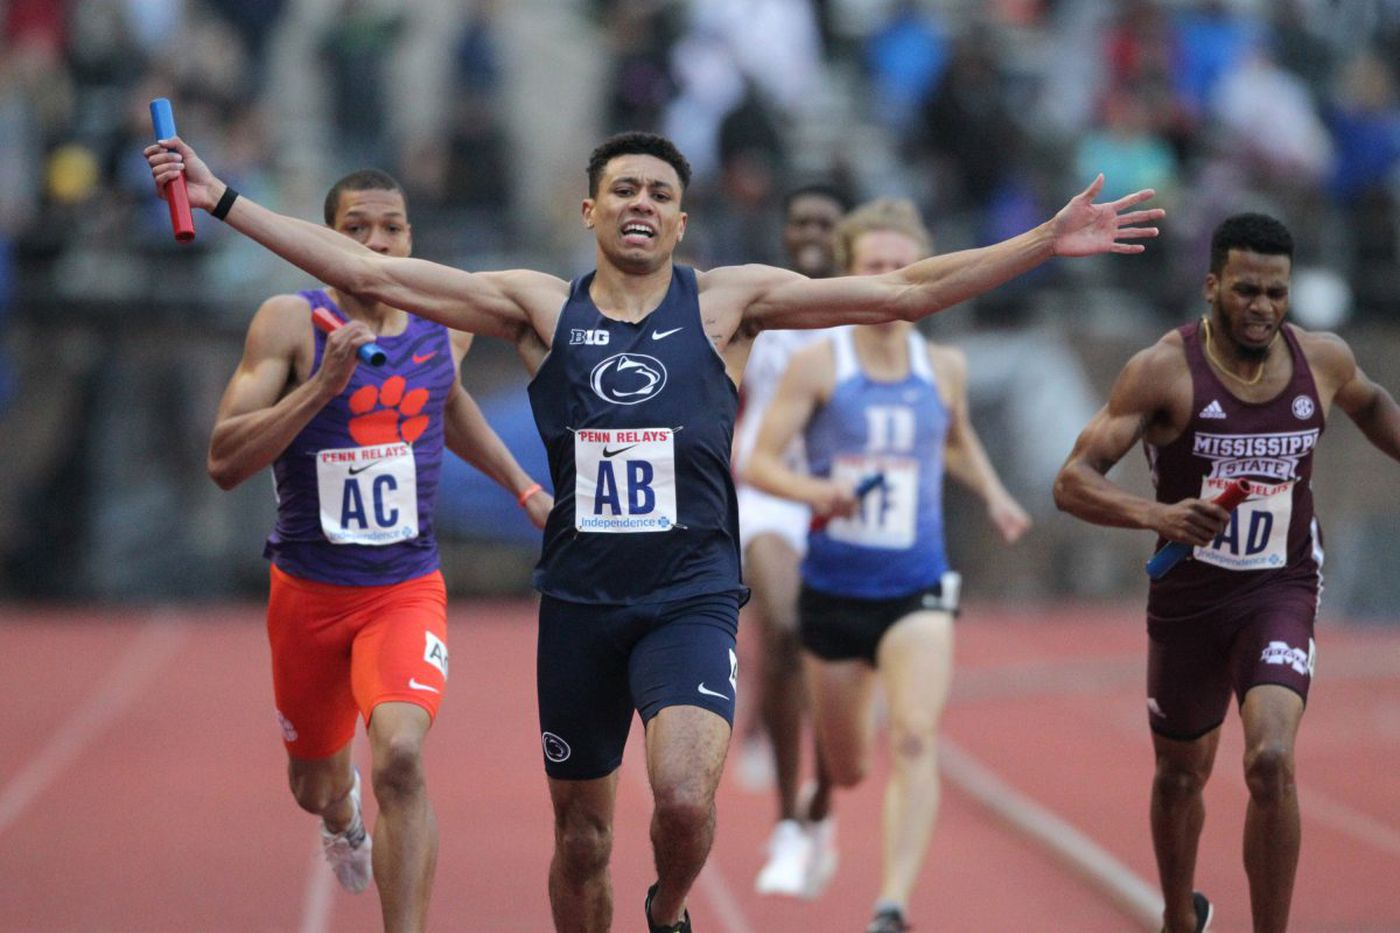 Penn Relays: Results, live updates from Saturday's races